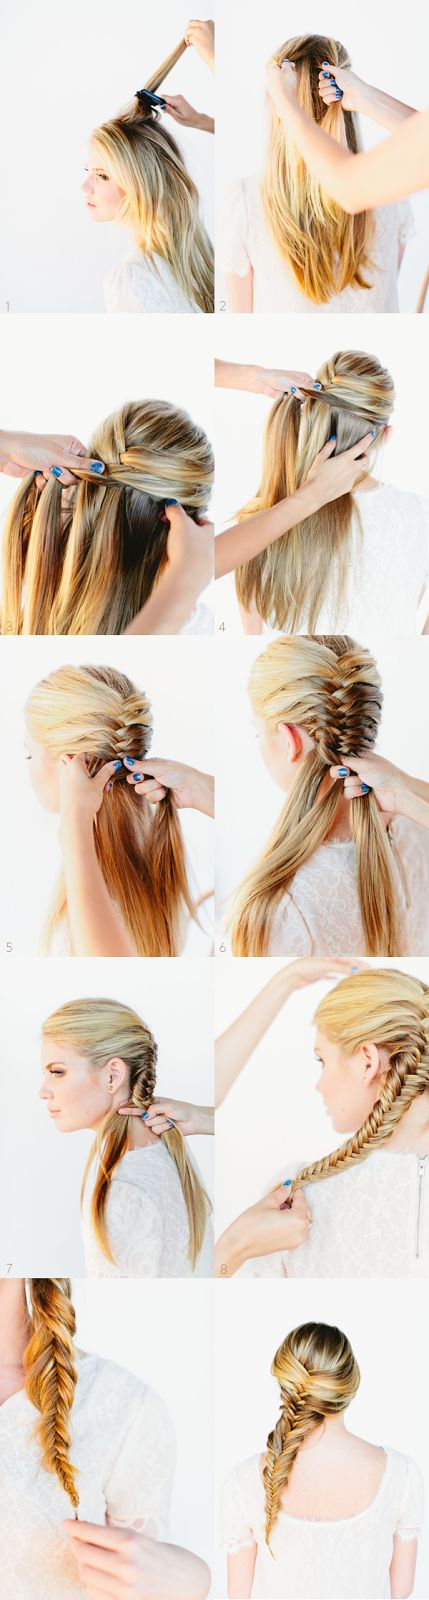 So that's how ya do it! Start with a French braid THEN work it into a fishtail- makes sense now!